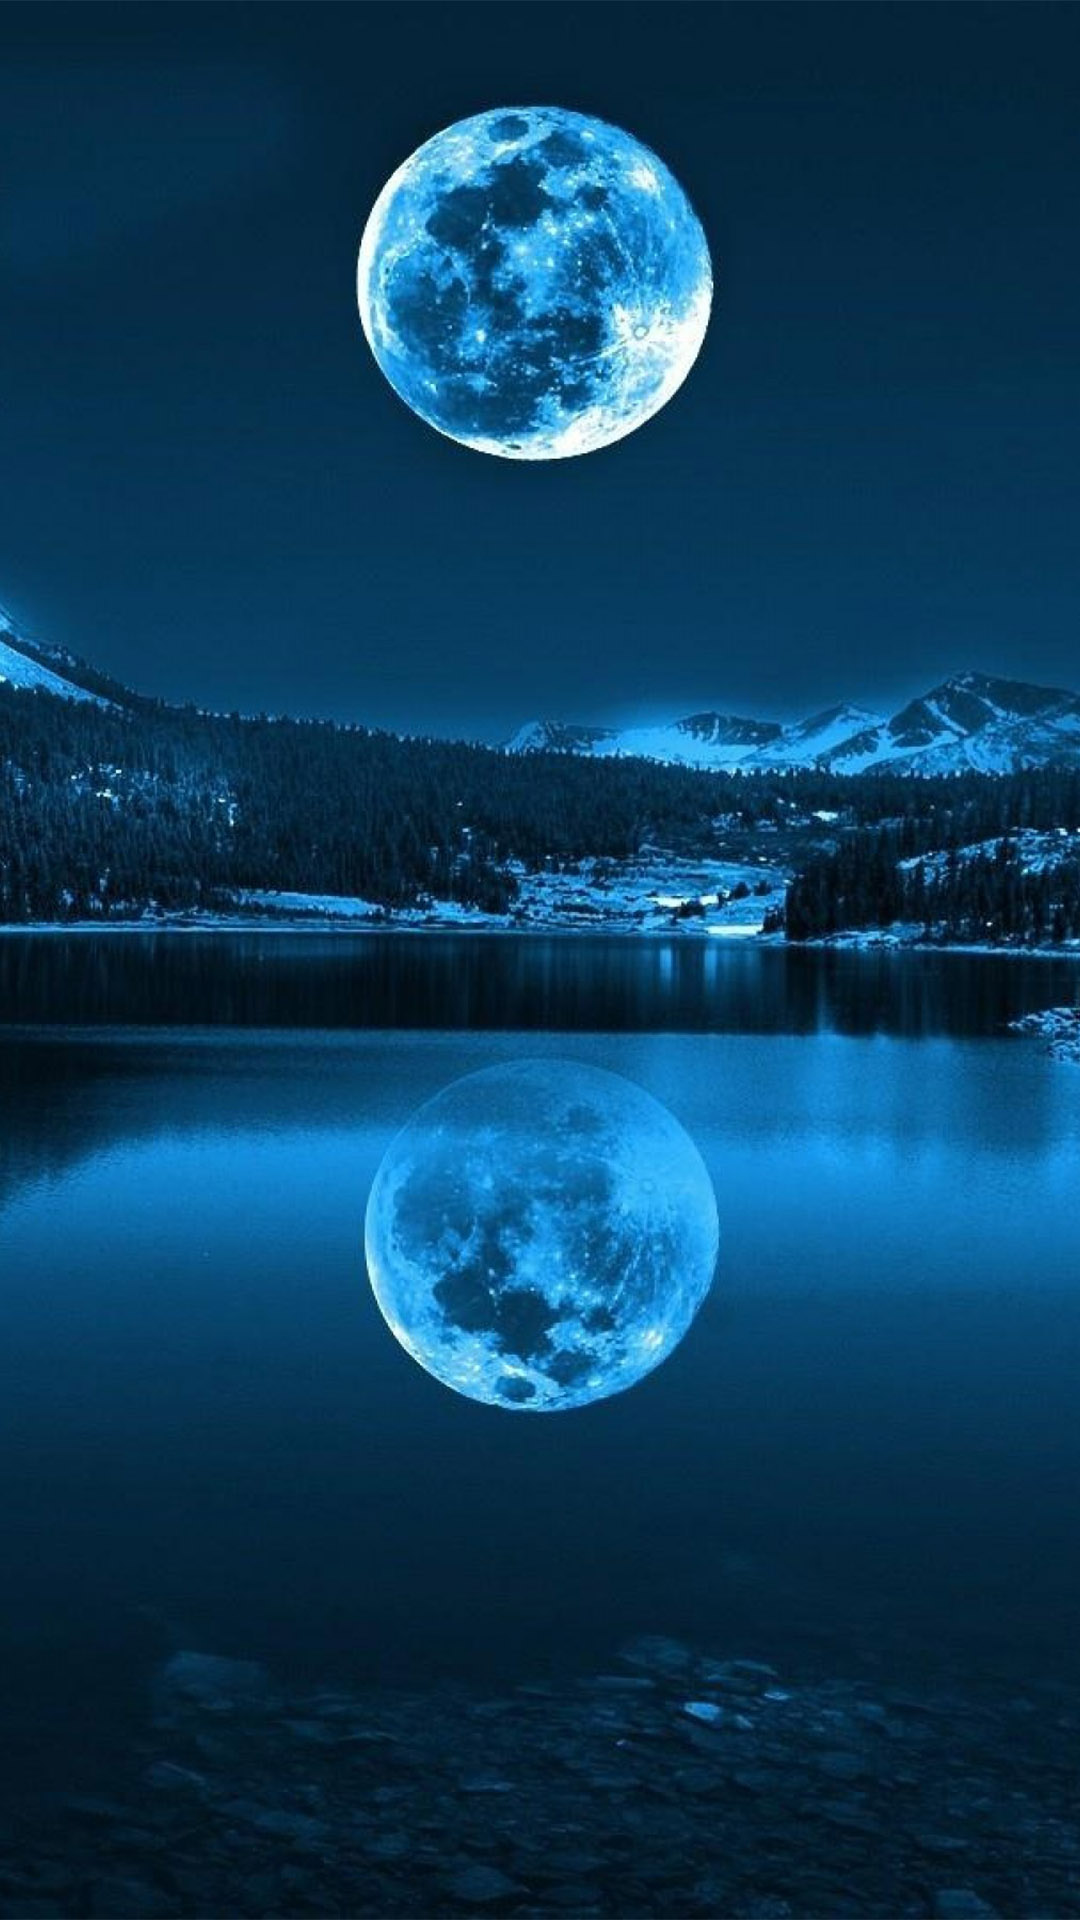 Giant Moon Rise Smartphone Wallpapers HD